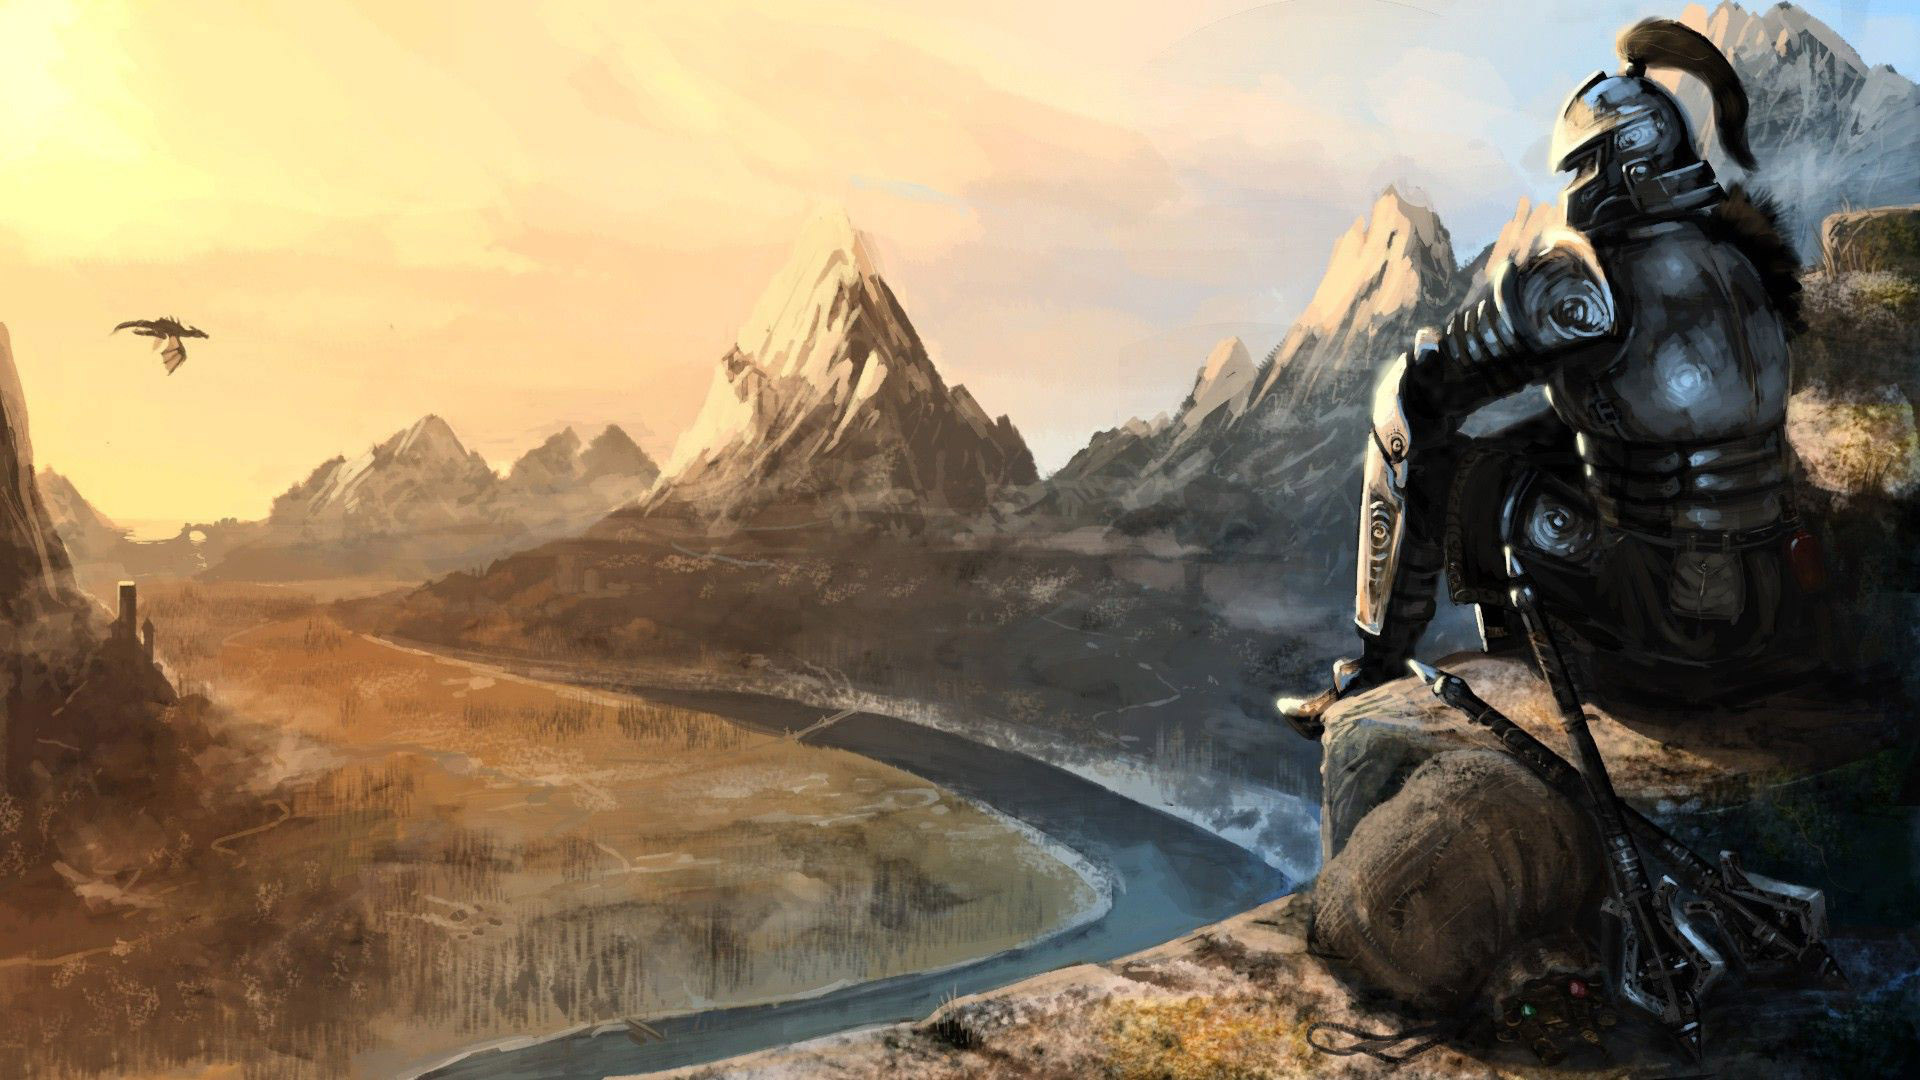 The Elder Scrolls Wallpaper: The Elder Scrolls V: Skyrim Details